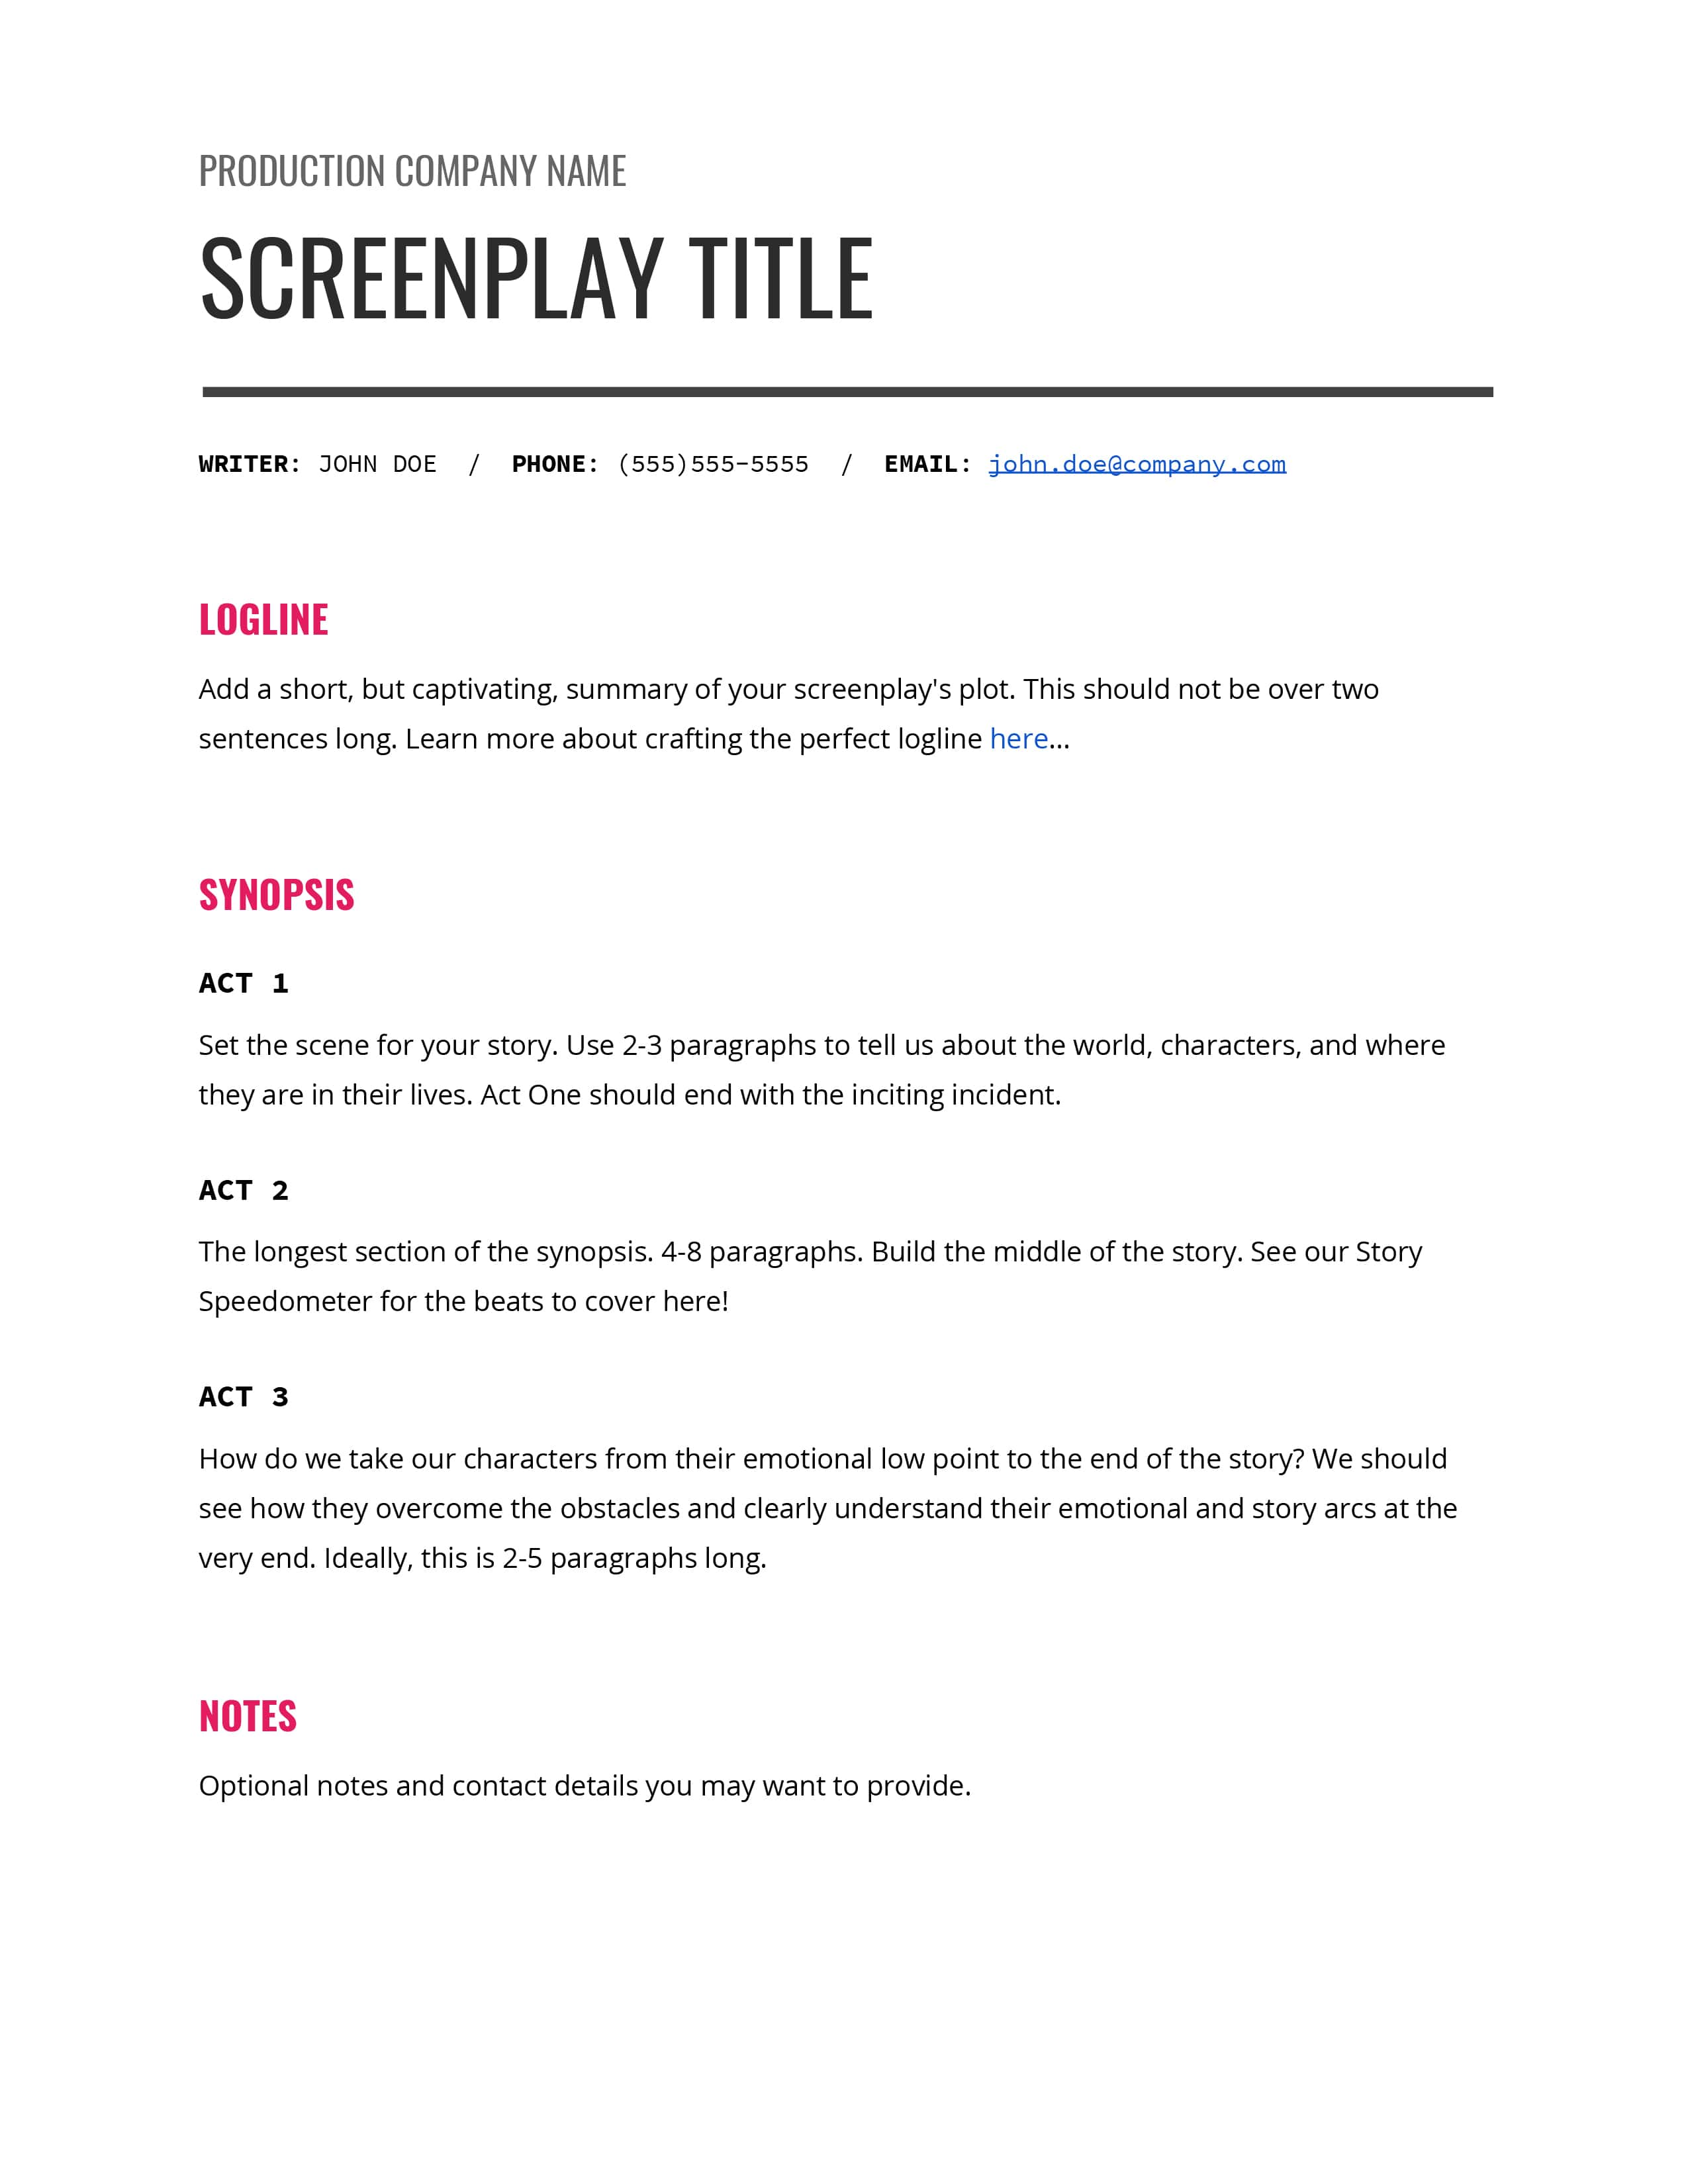 logline and synopsis examples